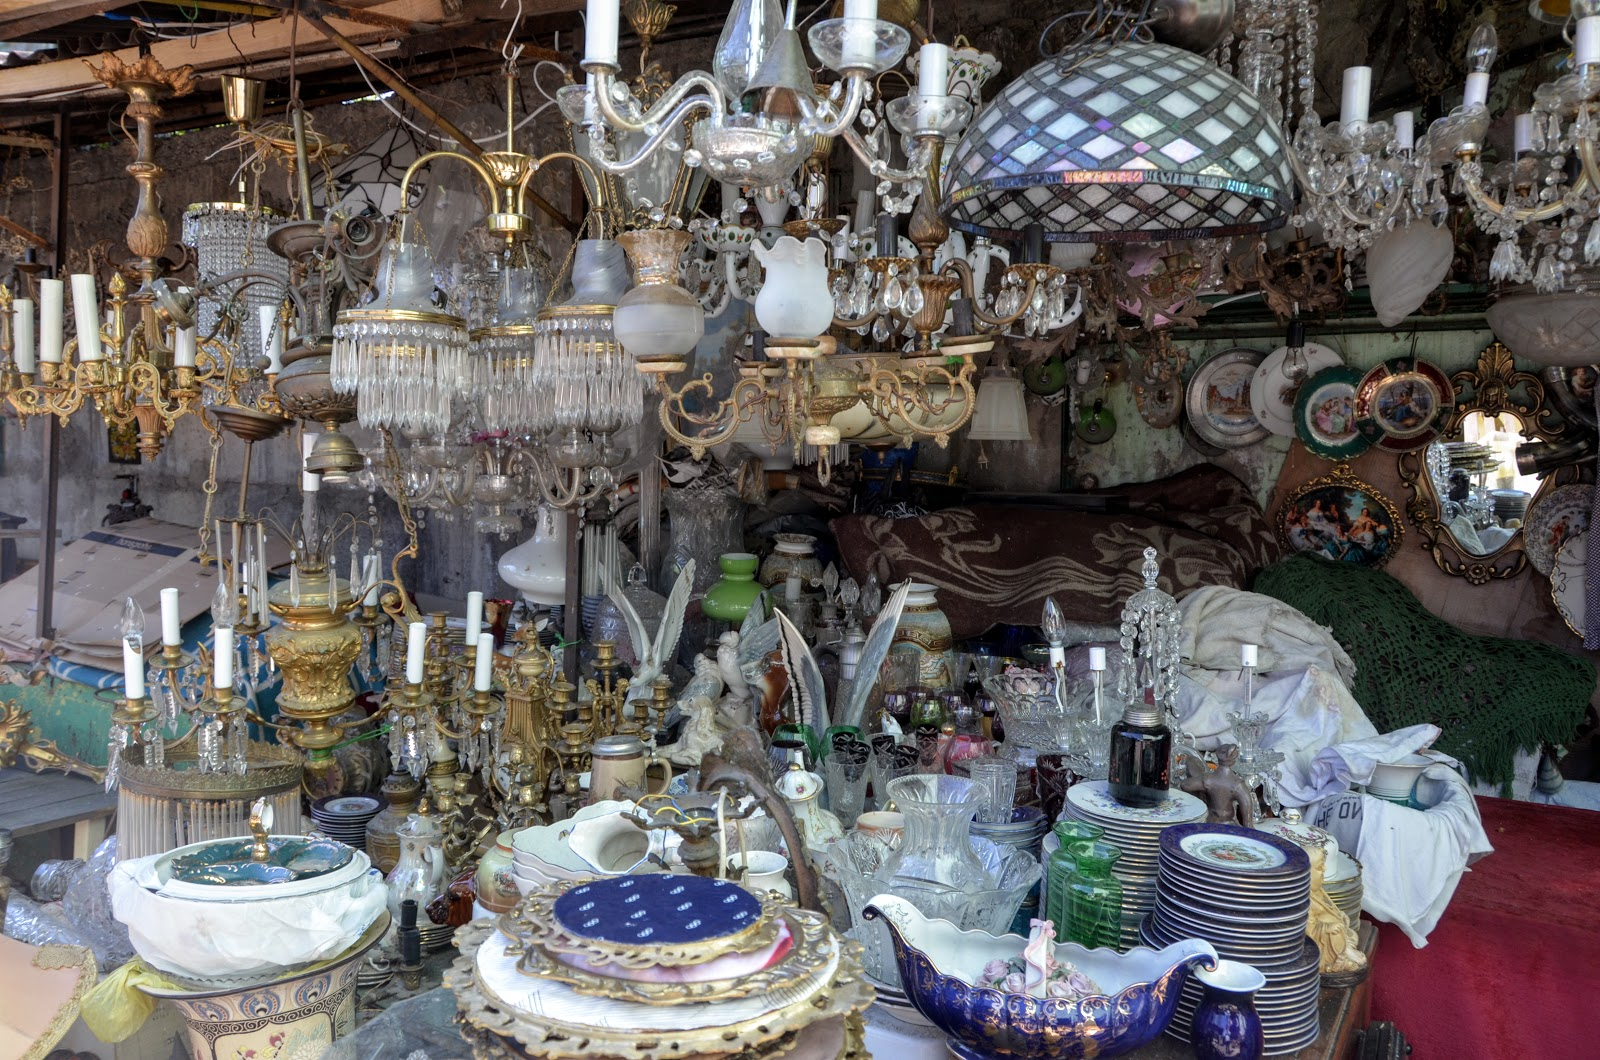 Nice If I was in need of a chandelier I would definitely be checking out the items in this section of the Dry Bridge Bazaar